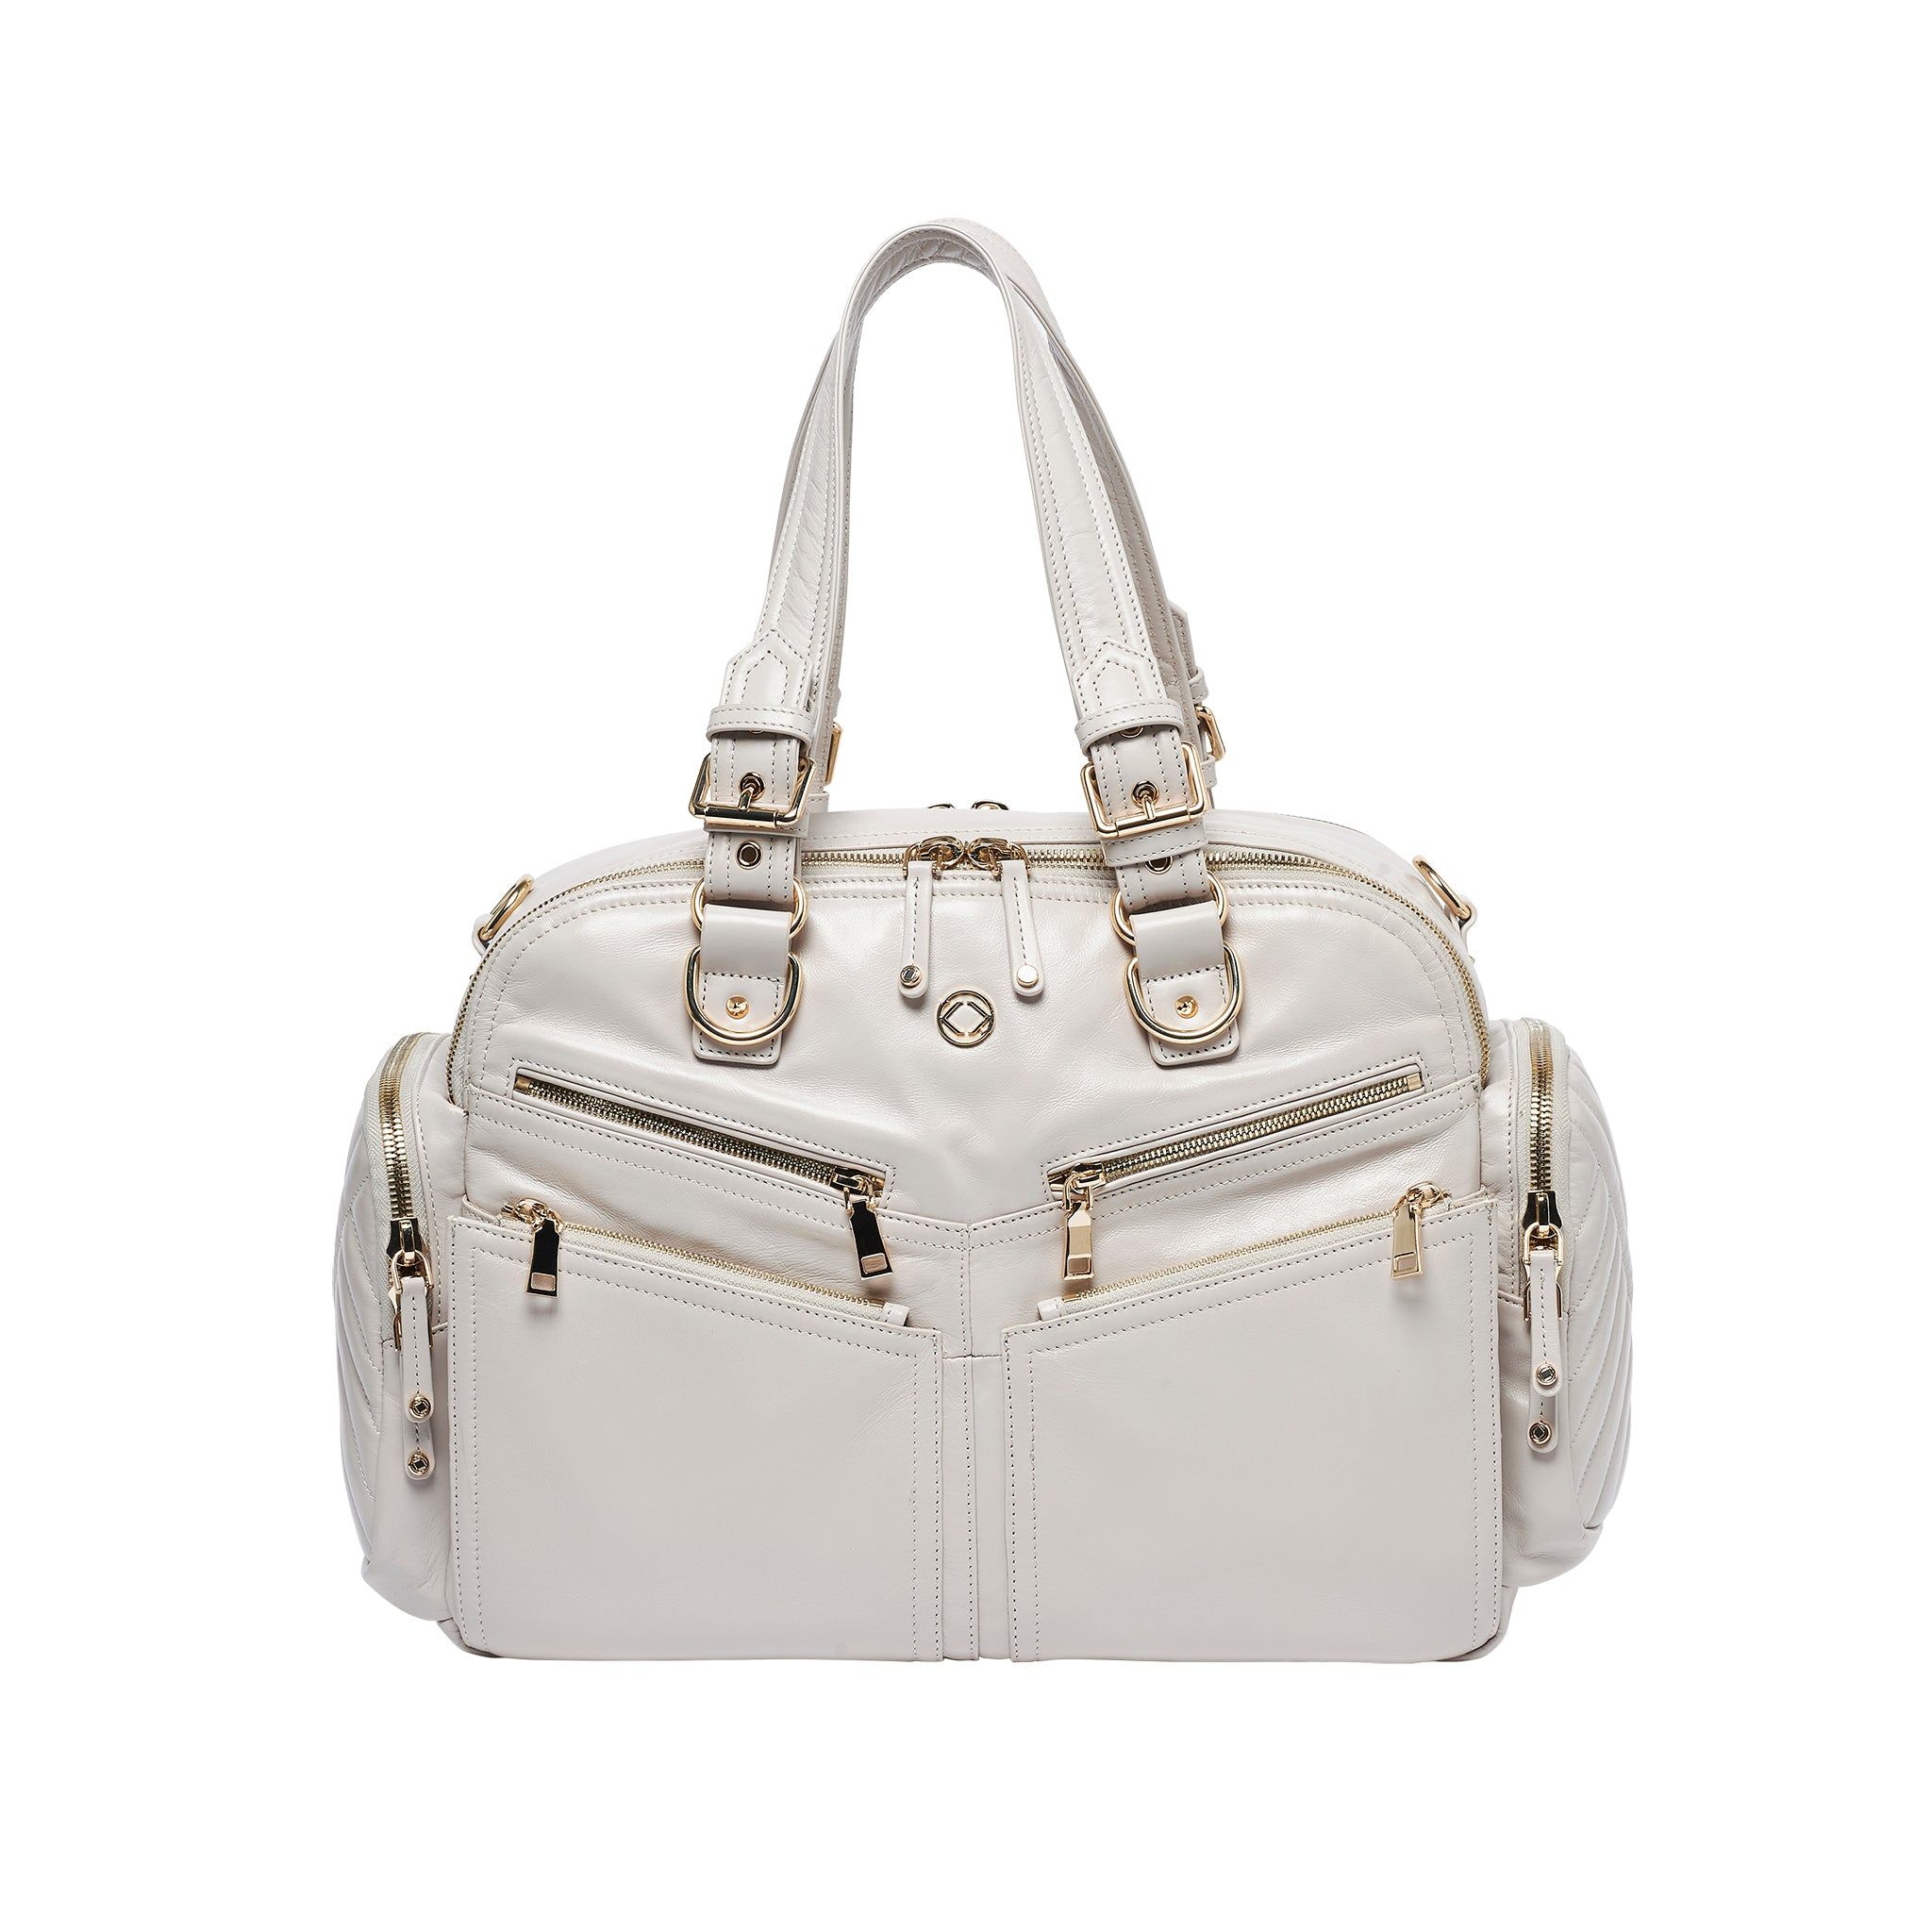 Westwood Putty Leather Holdall Handbag -  Limited Edition - Pre-order Now Open For March End Delivery